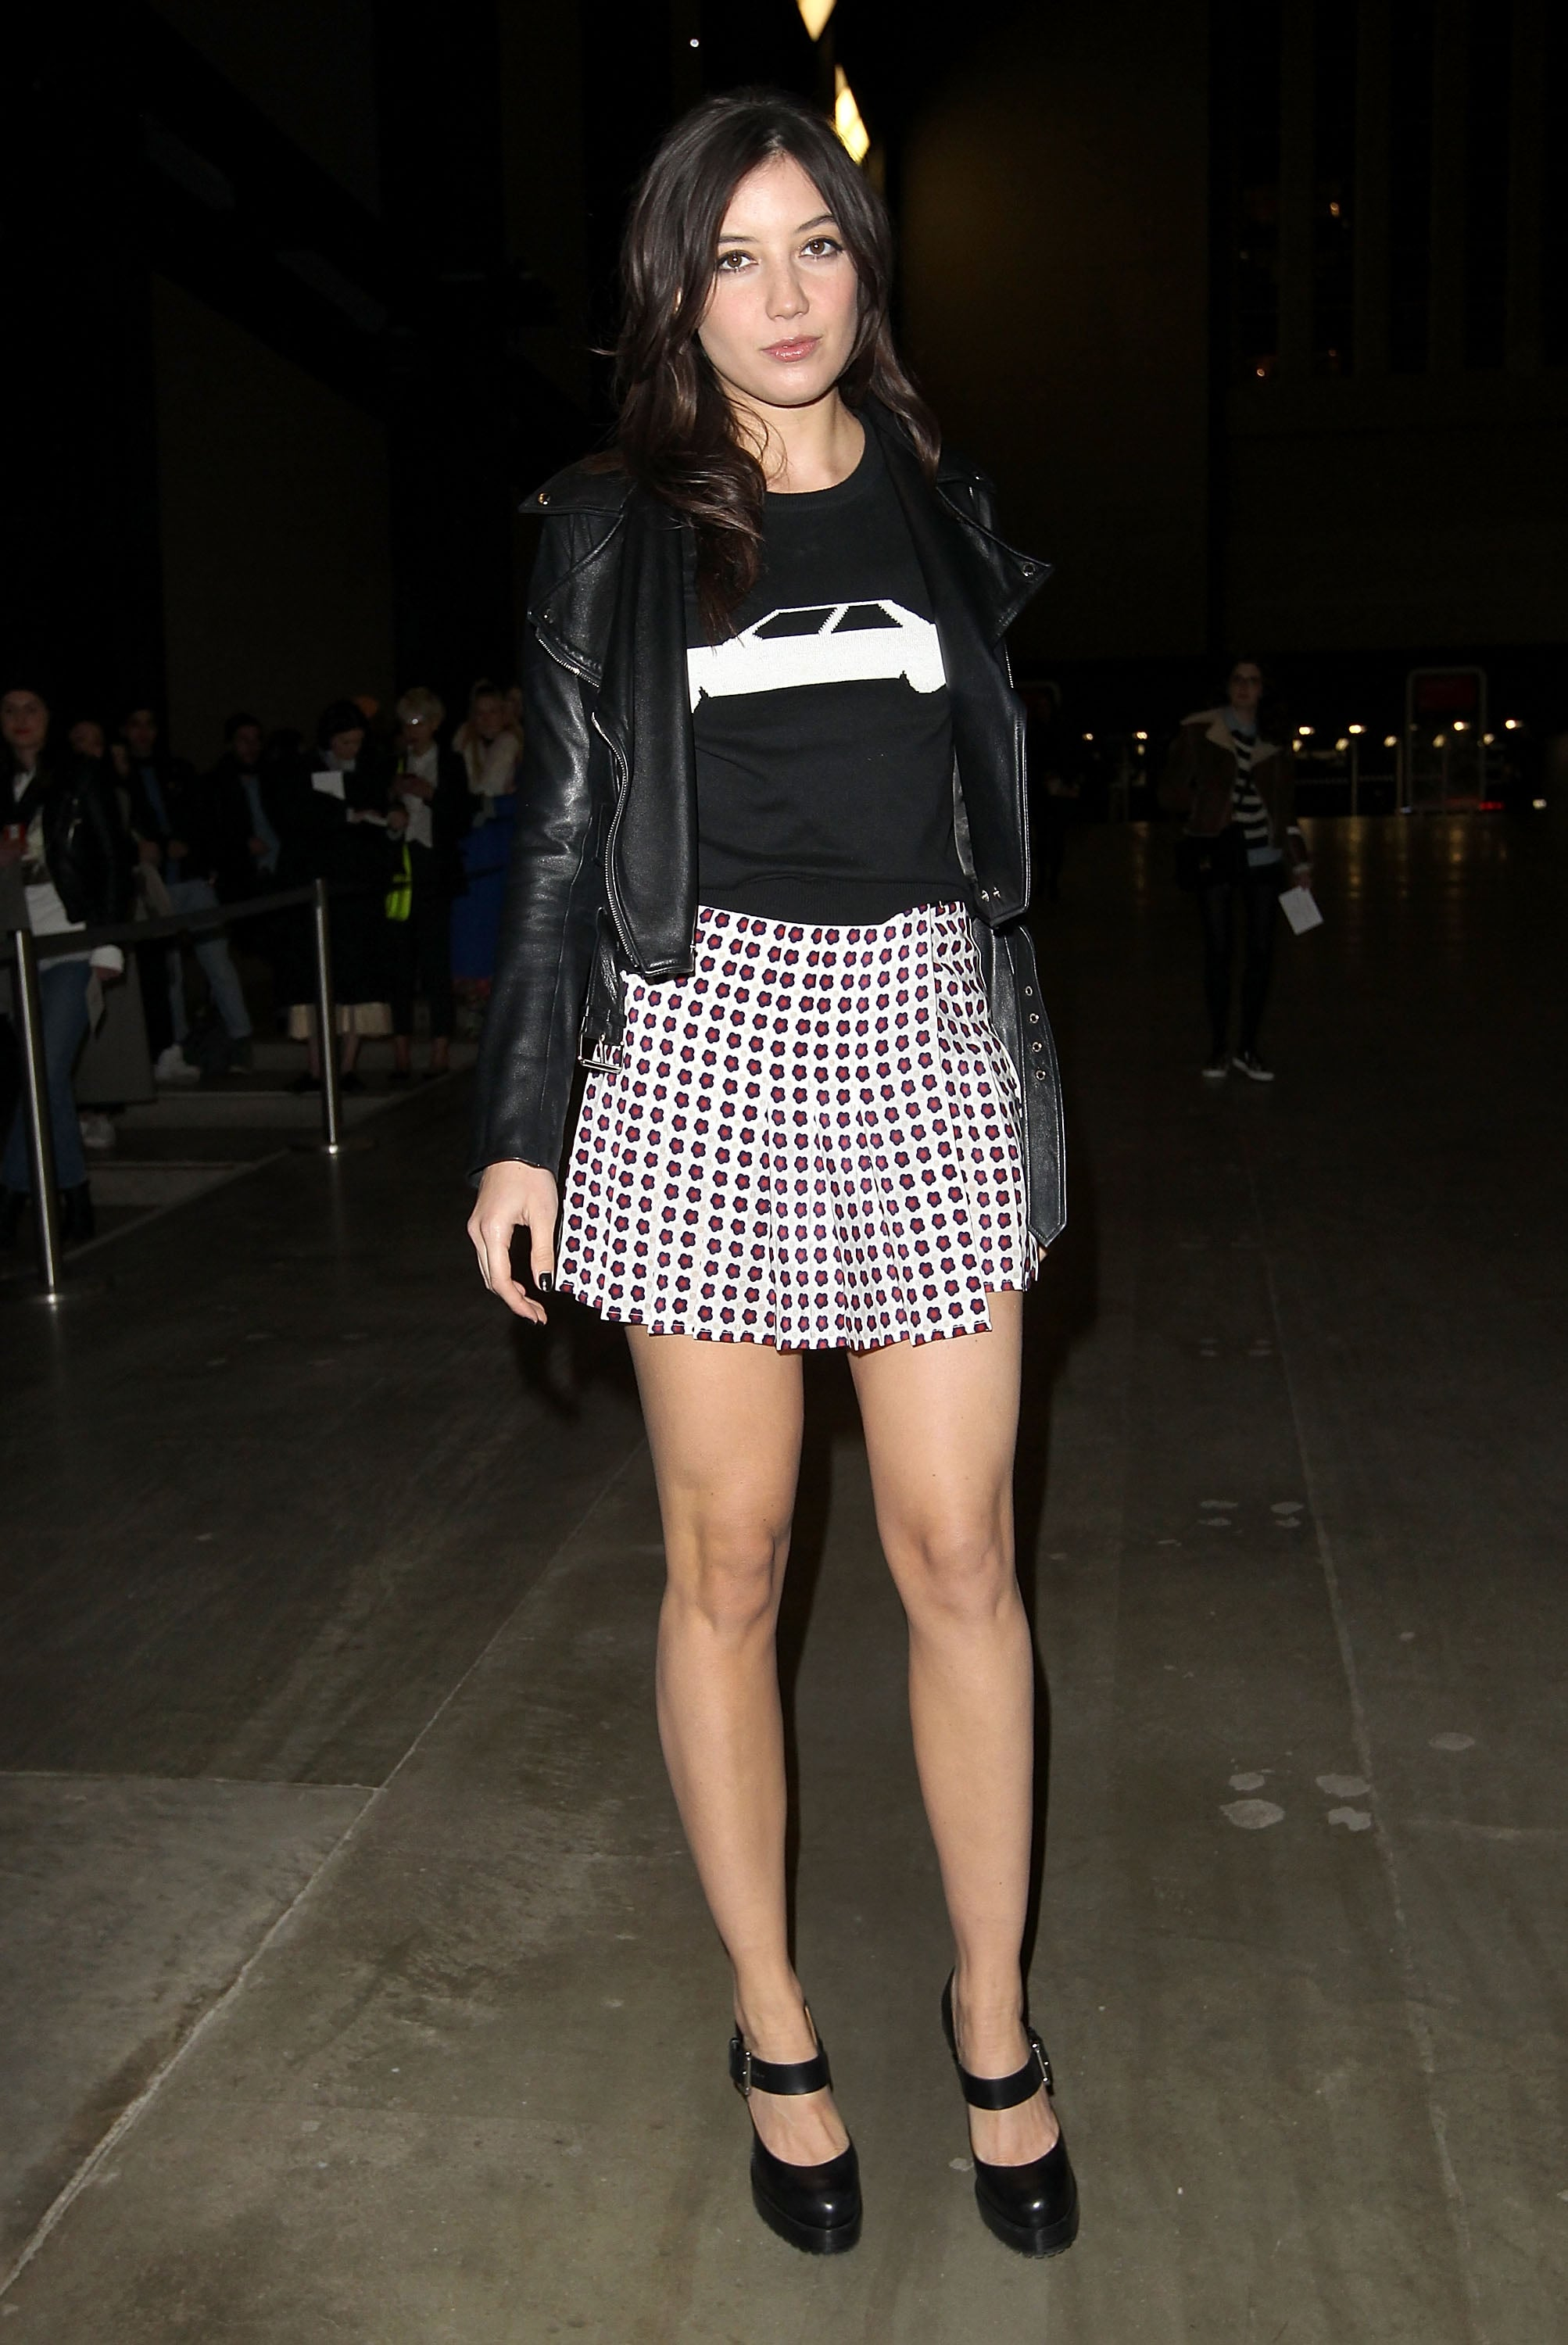 Daisy Lowe at the J.W. Anderson Fall 2013 show in London.